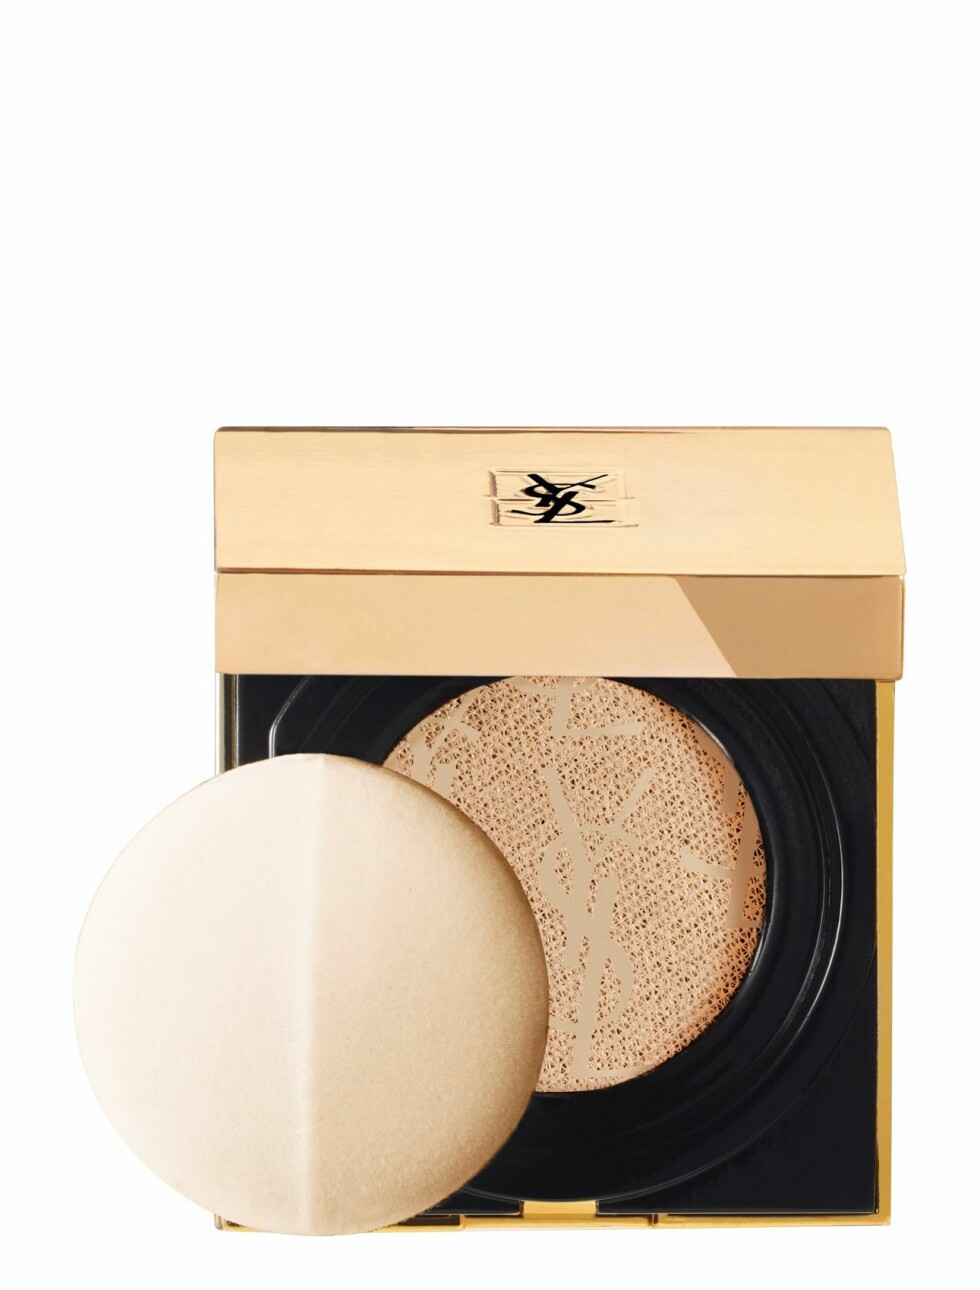 Cushion foundation fra YSL |490,-| https://www.boozt.com/no/no/yves-saint-laurent/touche-clat-cushion-b50_15868475/15868625?navId=67362&group=listing&position=1500000